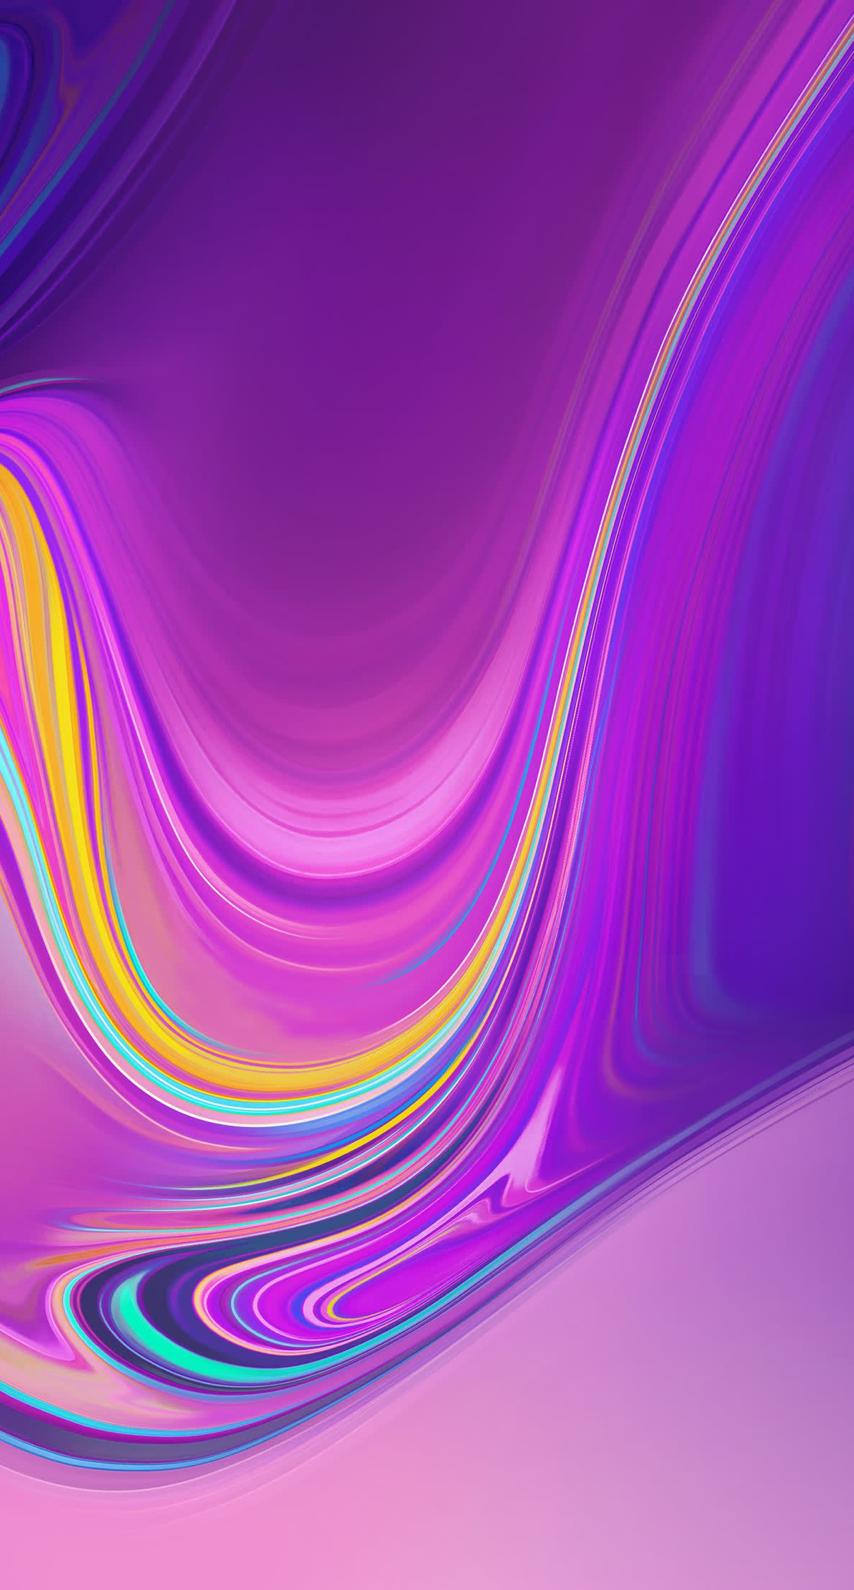 Devices Samsung Galaxy J6 Mobile Tablet Hd Wallpaper Devices Samsung Galaxy Mob Samsung Wallpaper Samsung Galaxy Wallpaper Android Samsung Galaxy Wallpaper